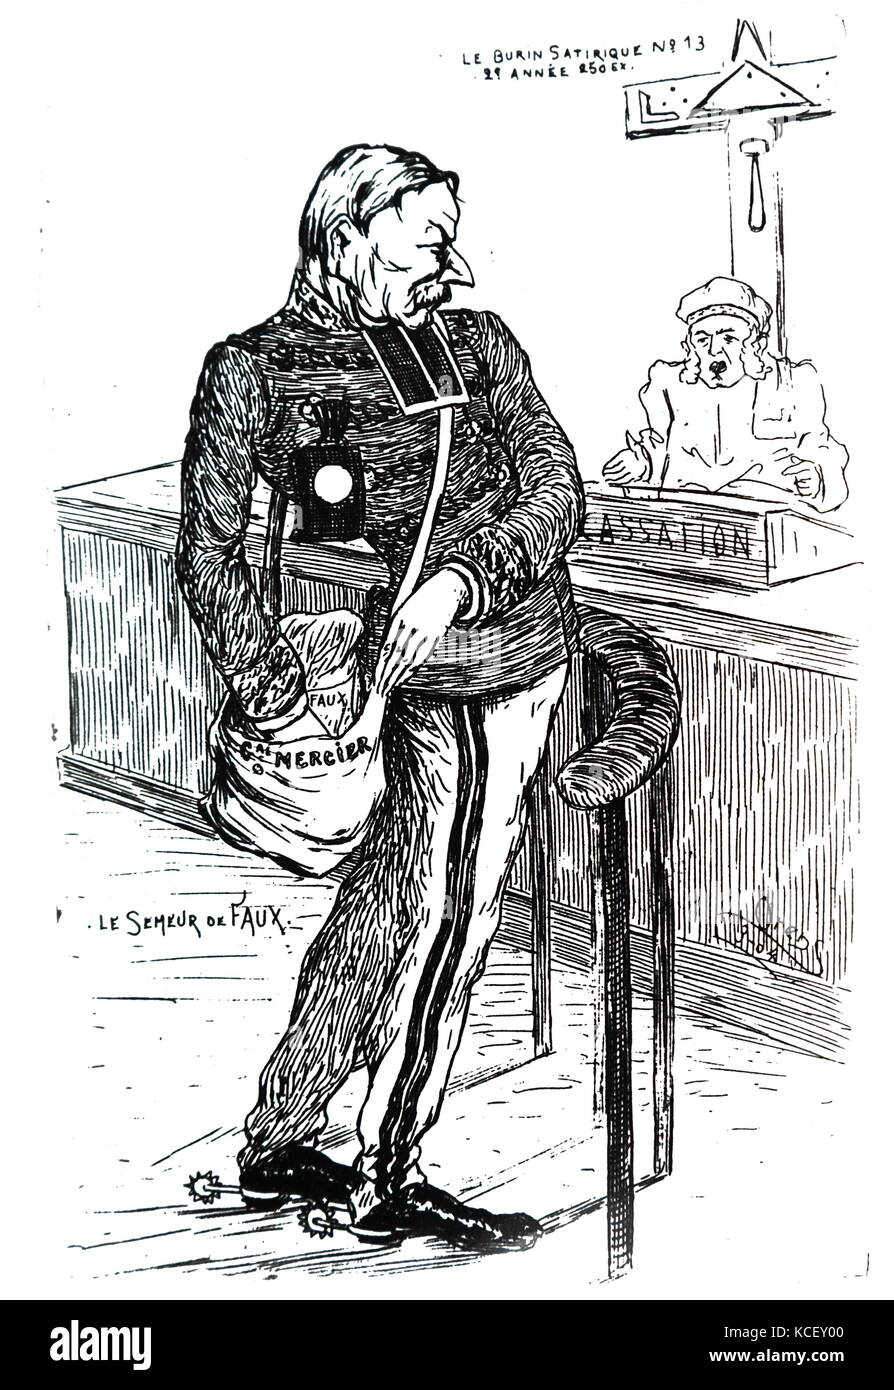 Cartoon depicting Auguste Mercier (1833 – 1921) . Mercier was a French general and Minister of War at the time of - Stock Image